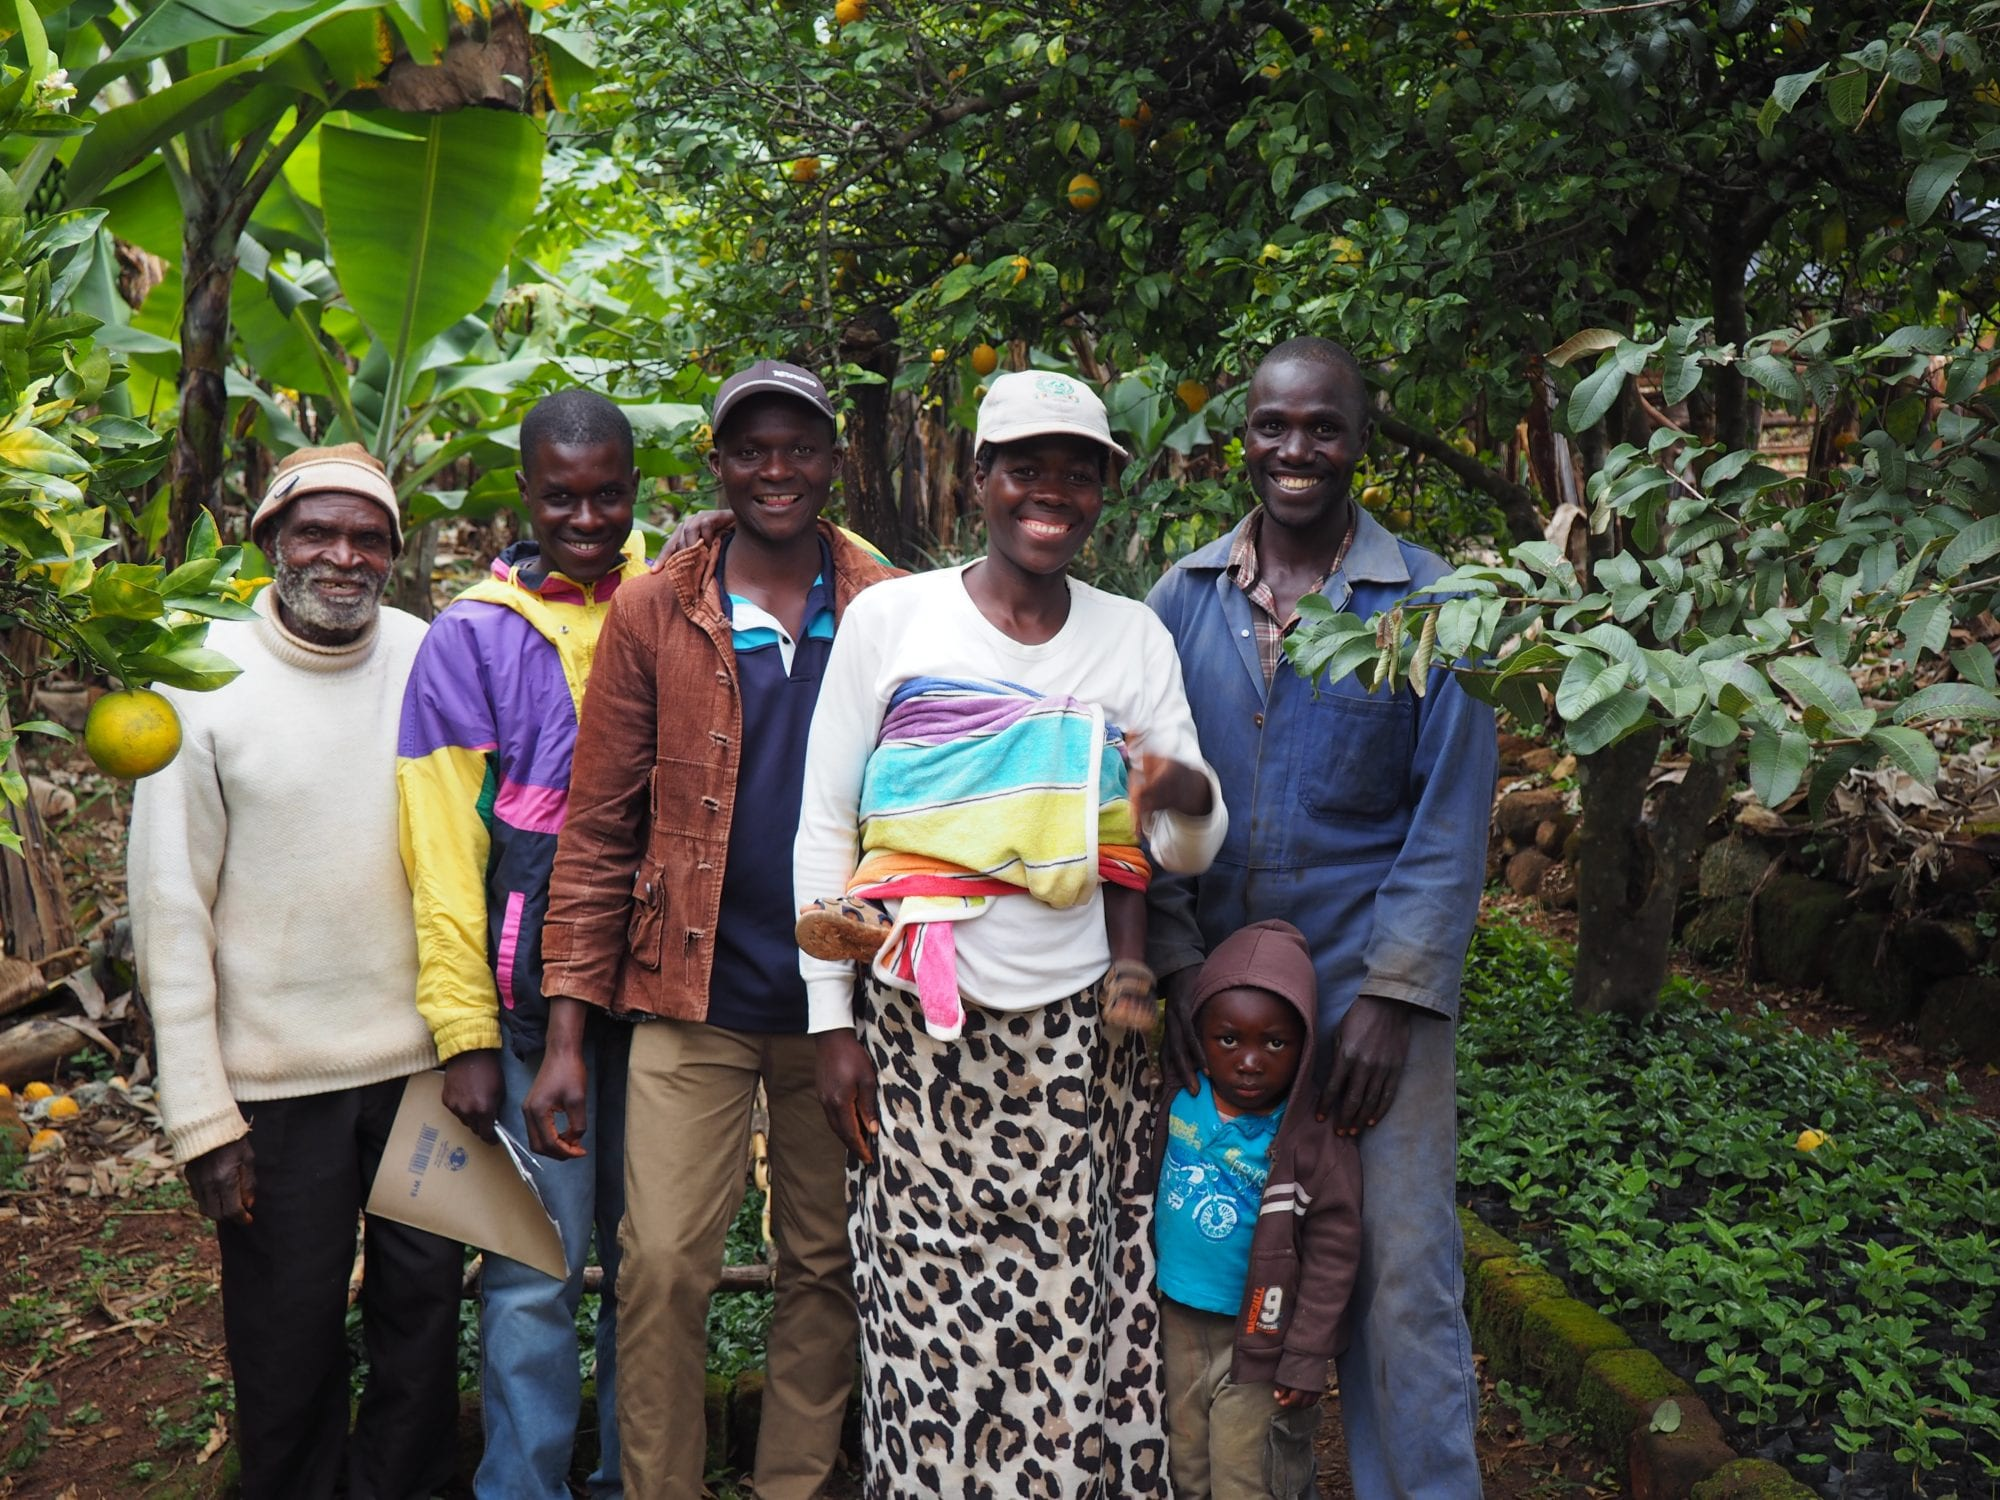 A group of coffee farmers in Zimbabwe's Honde Valley.